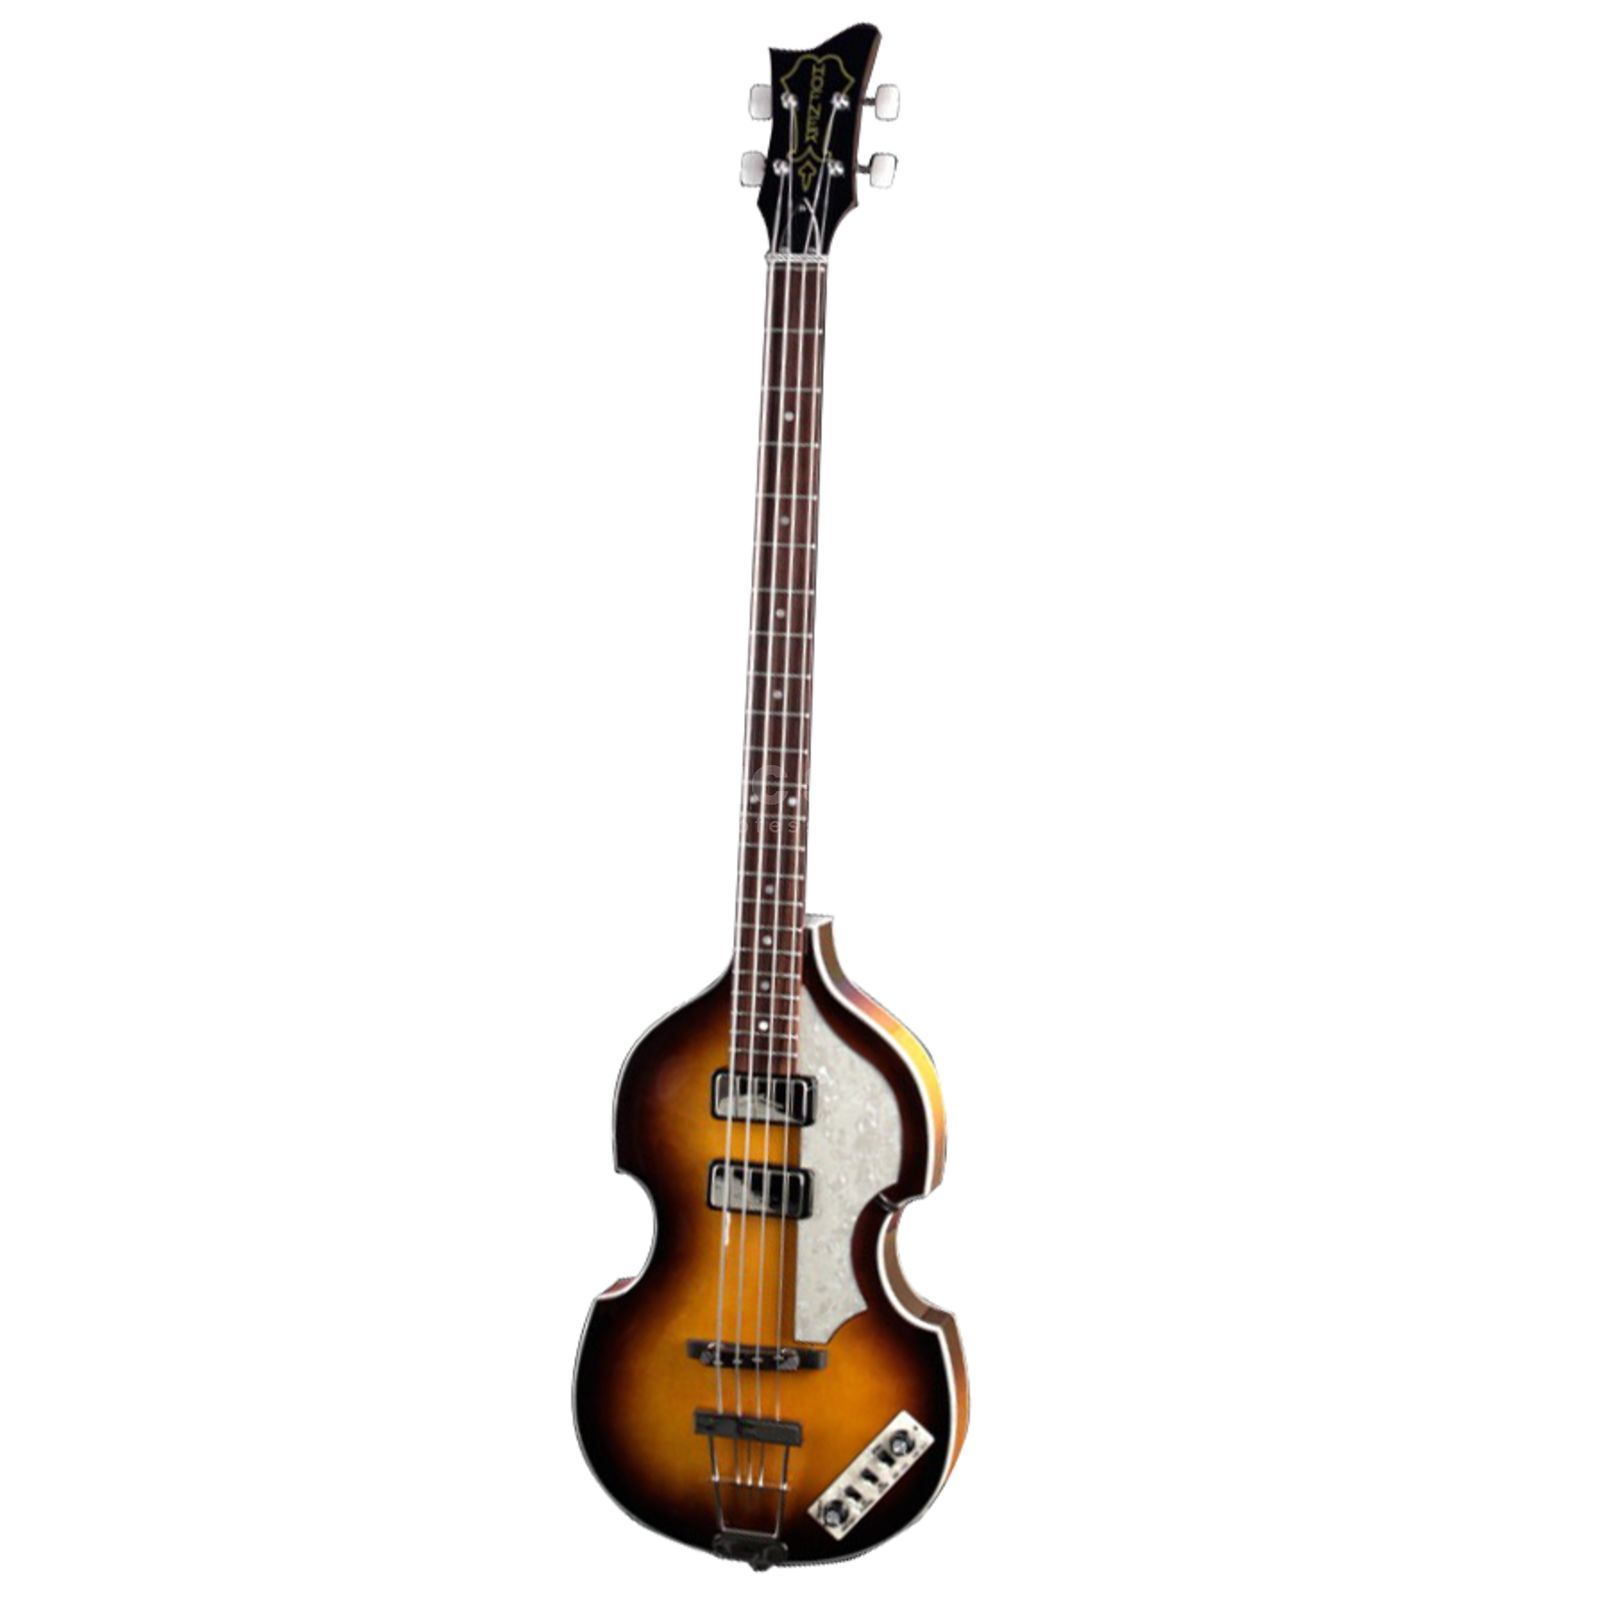 Höfner Contemp. Violin Bass 500/1-CV Sunburst B-Stock Image du produit